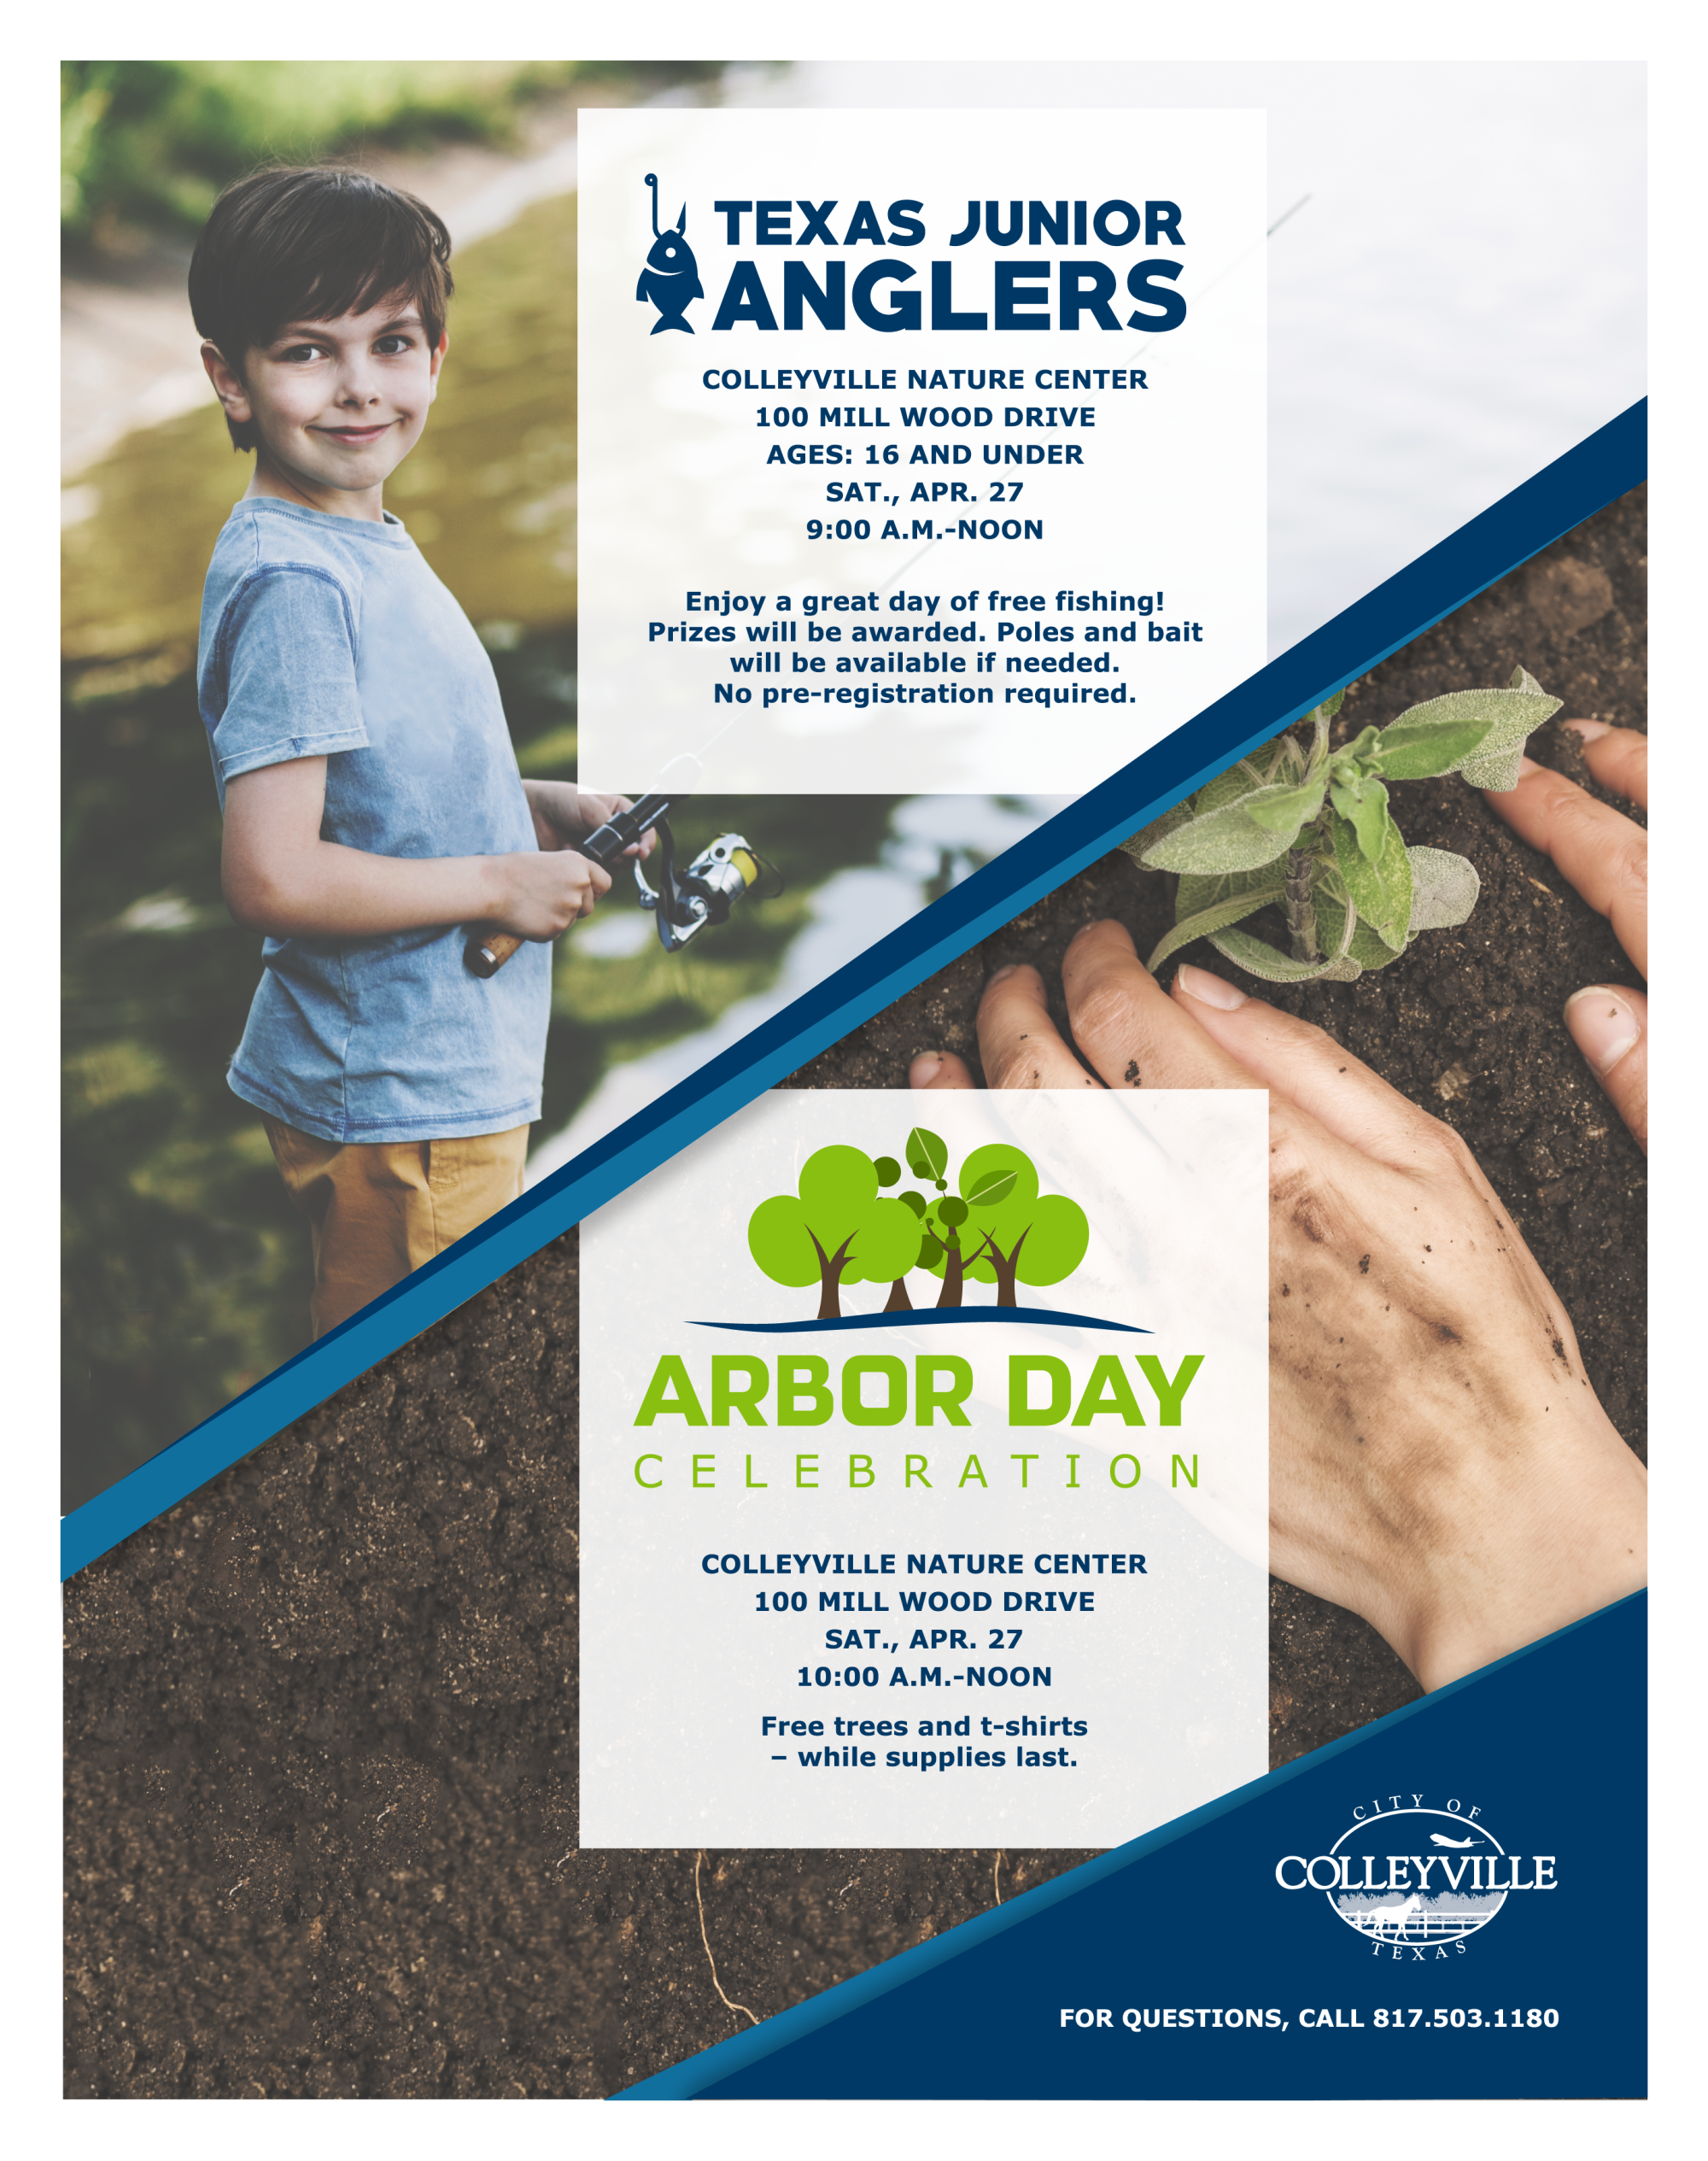 Angler Arbor Day